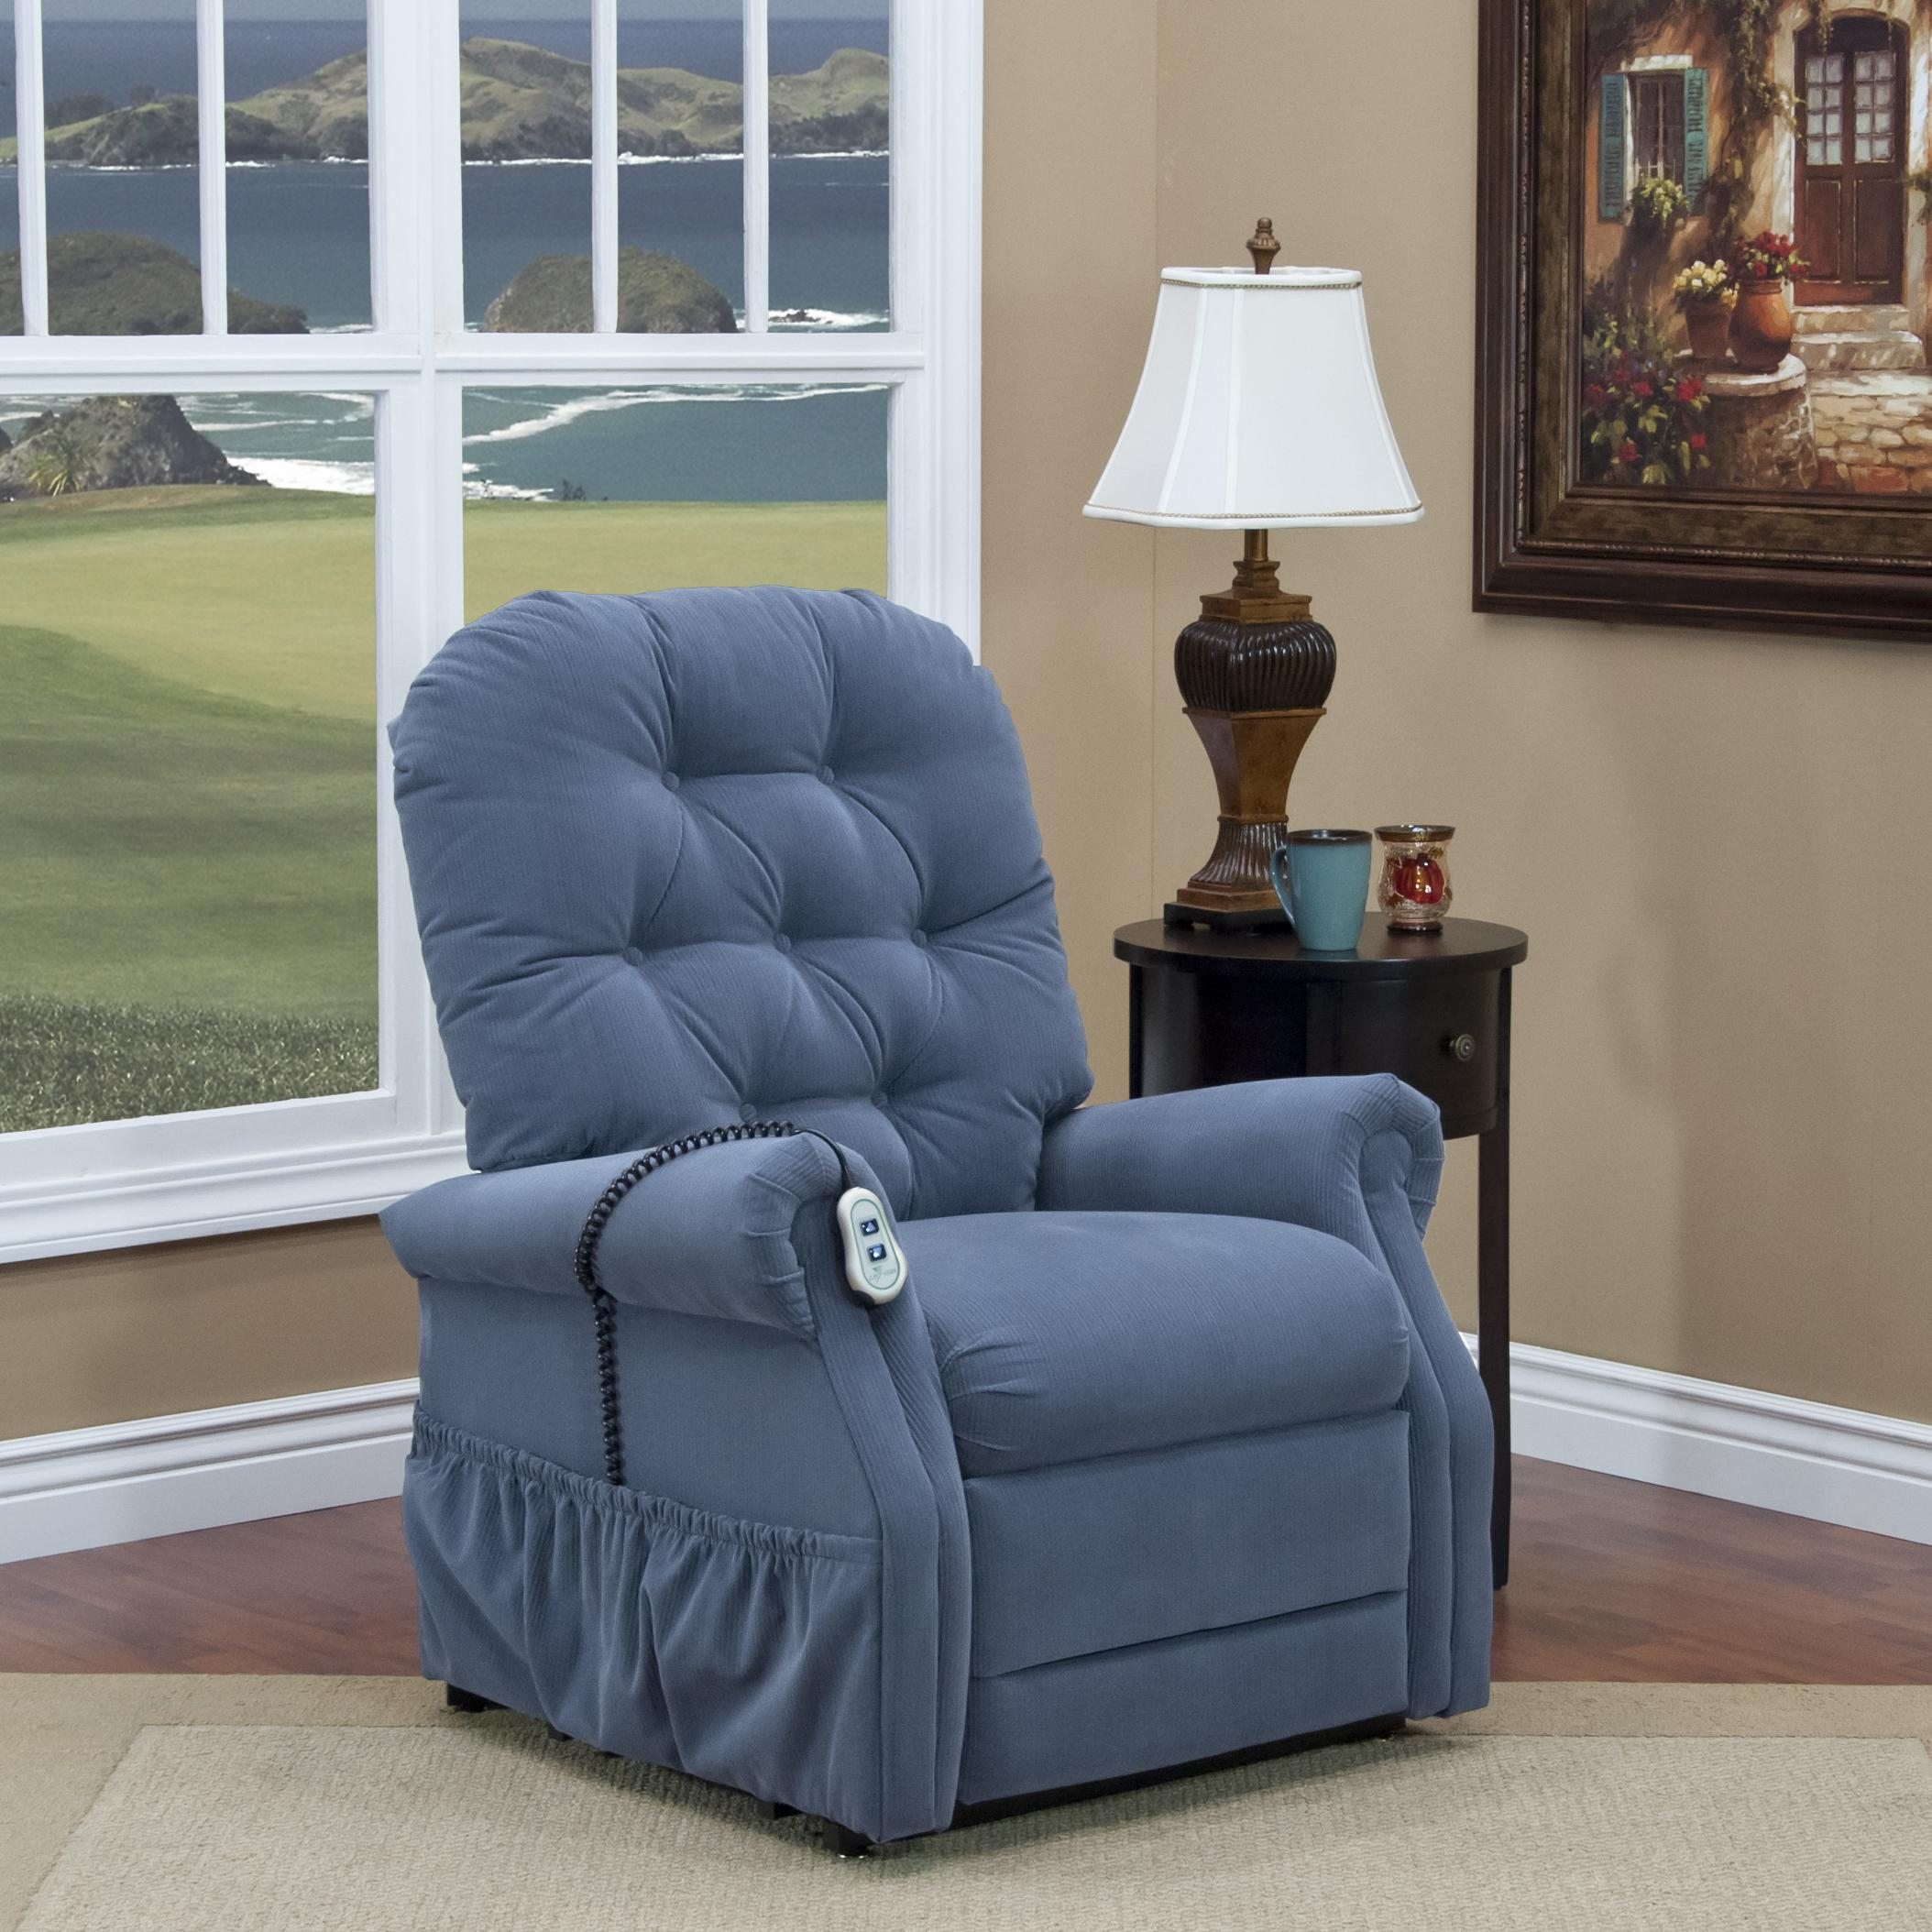 handicap lift chair recliner black spandex covers for weddings med and mobility 2555 casual 2 way with